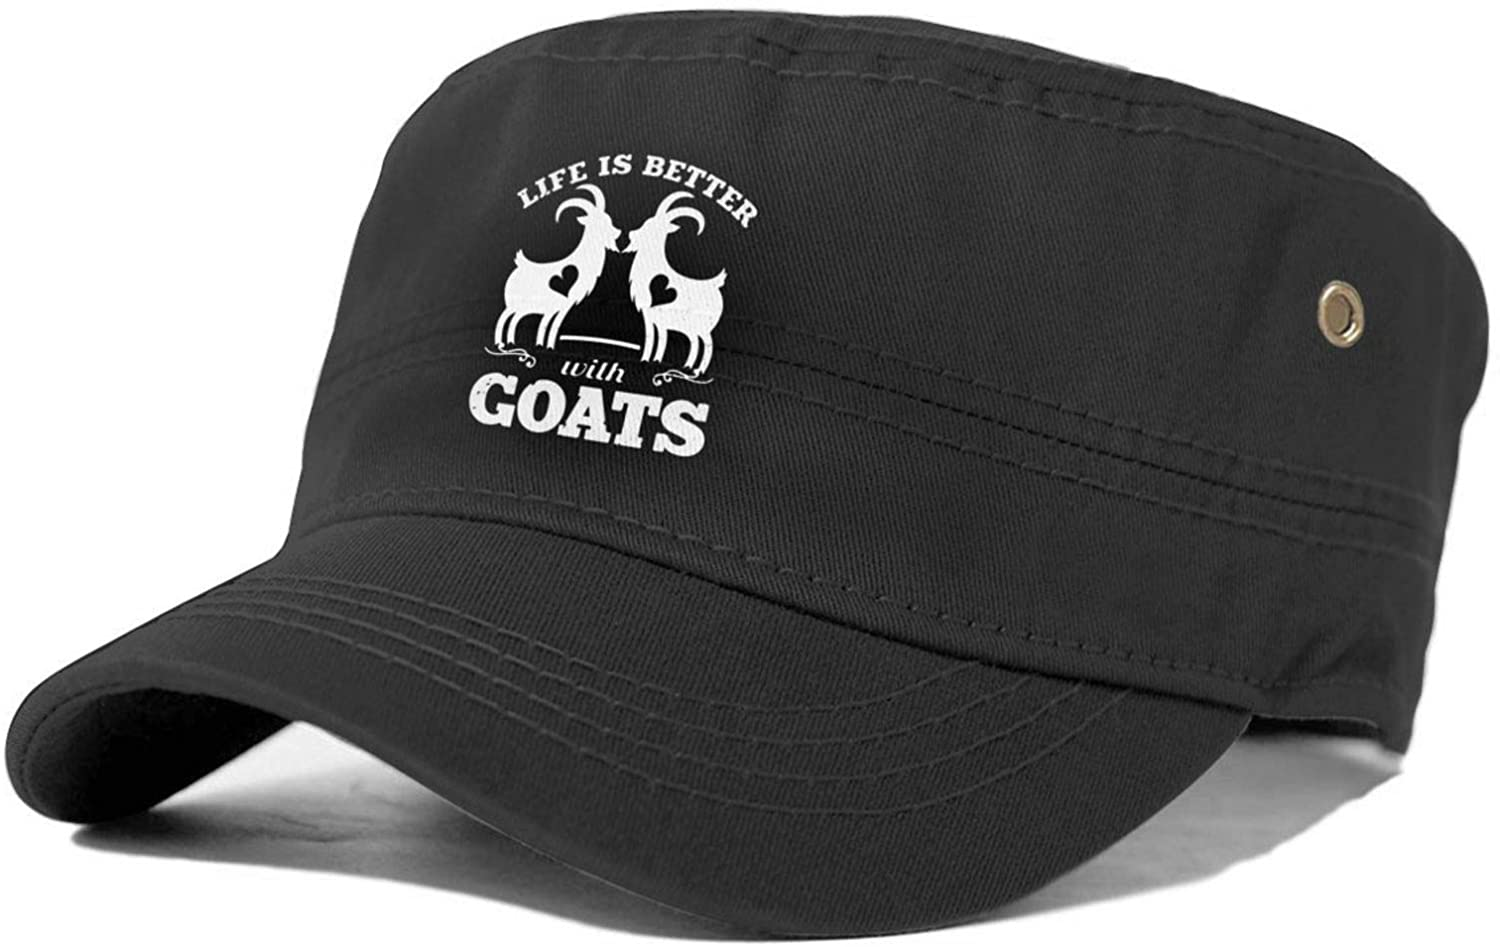 Life is Better with Goats Unisex Cap Military Cap Cowboy hat Adjustable Cadet Army Cap Basic Everyday Military Style hat